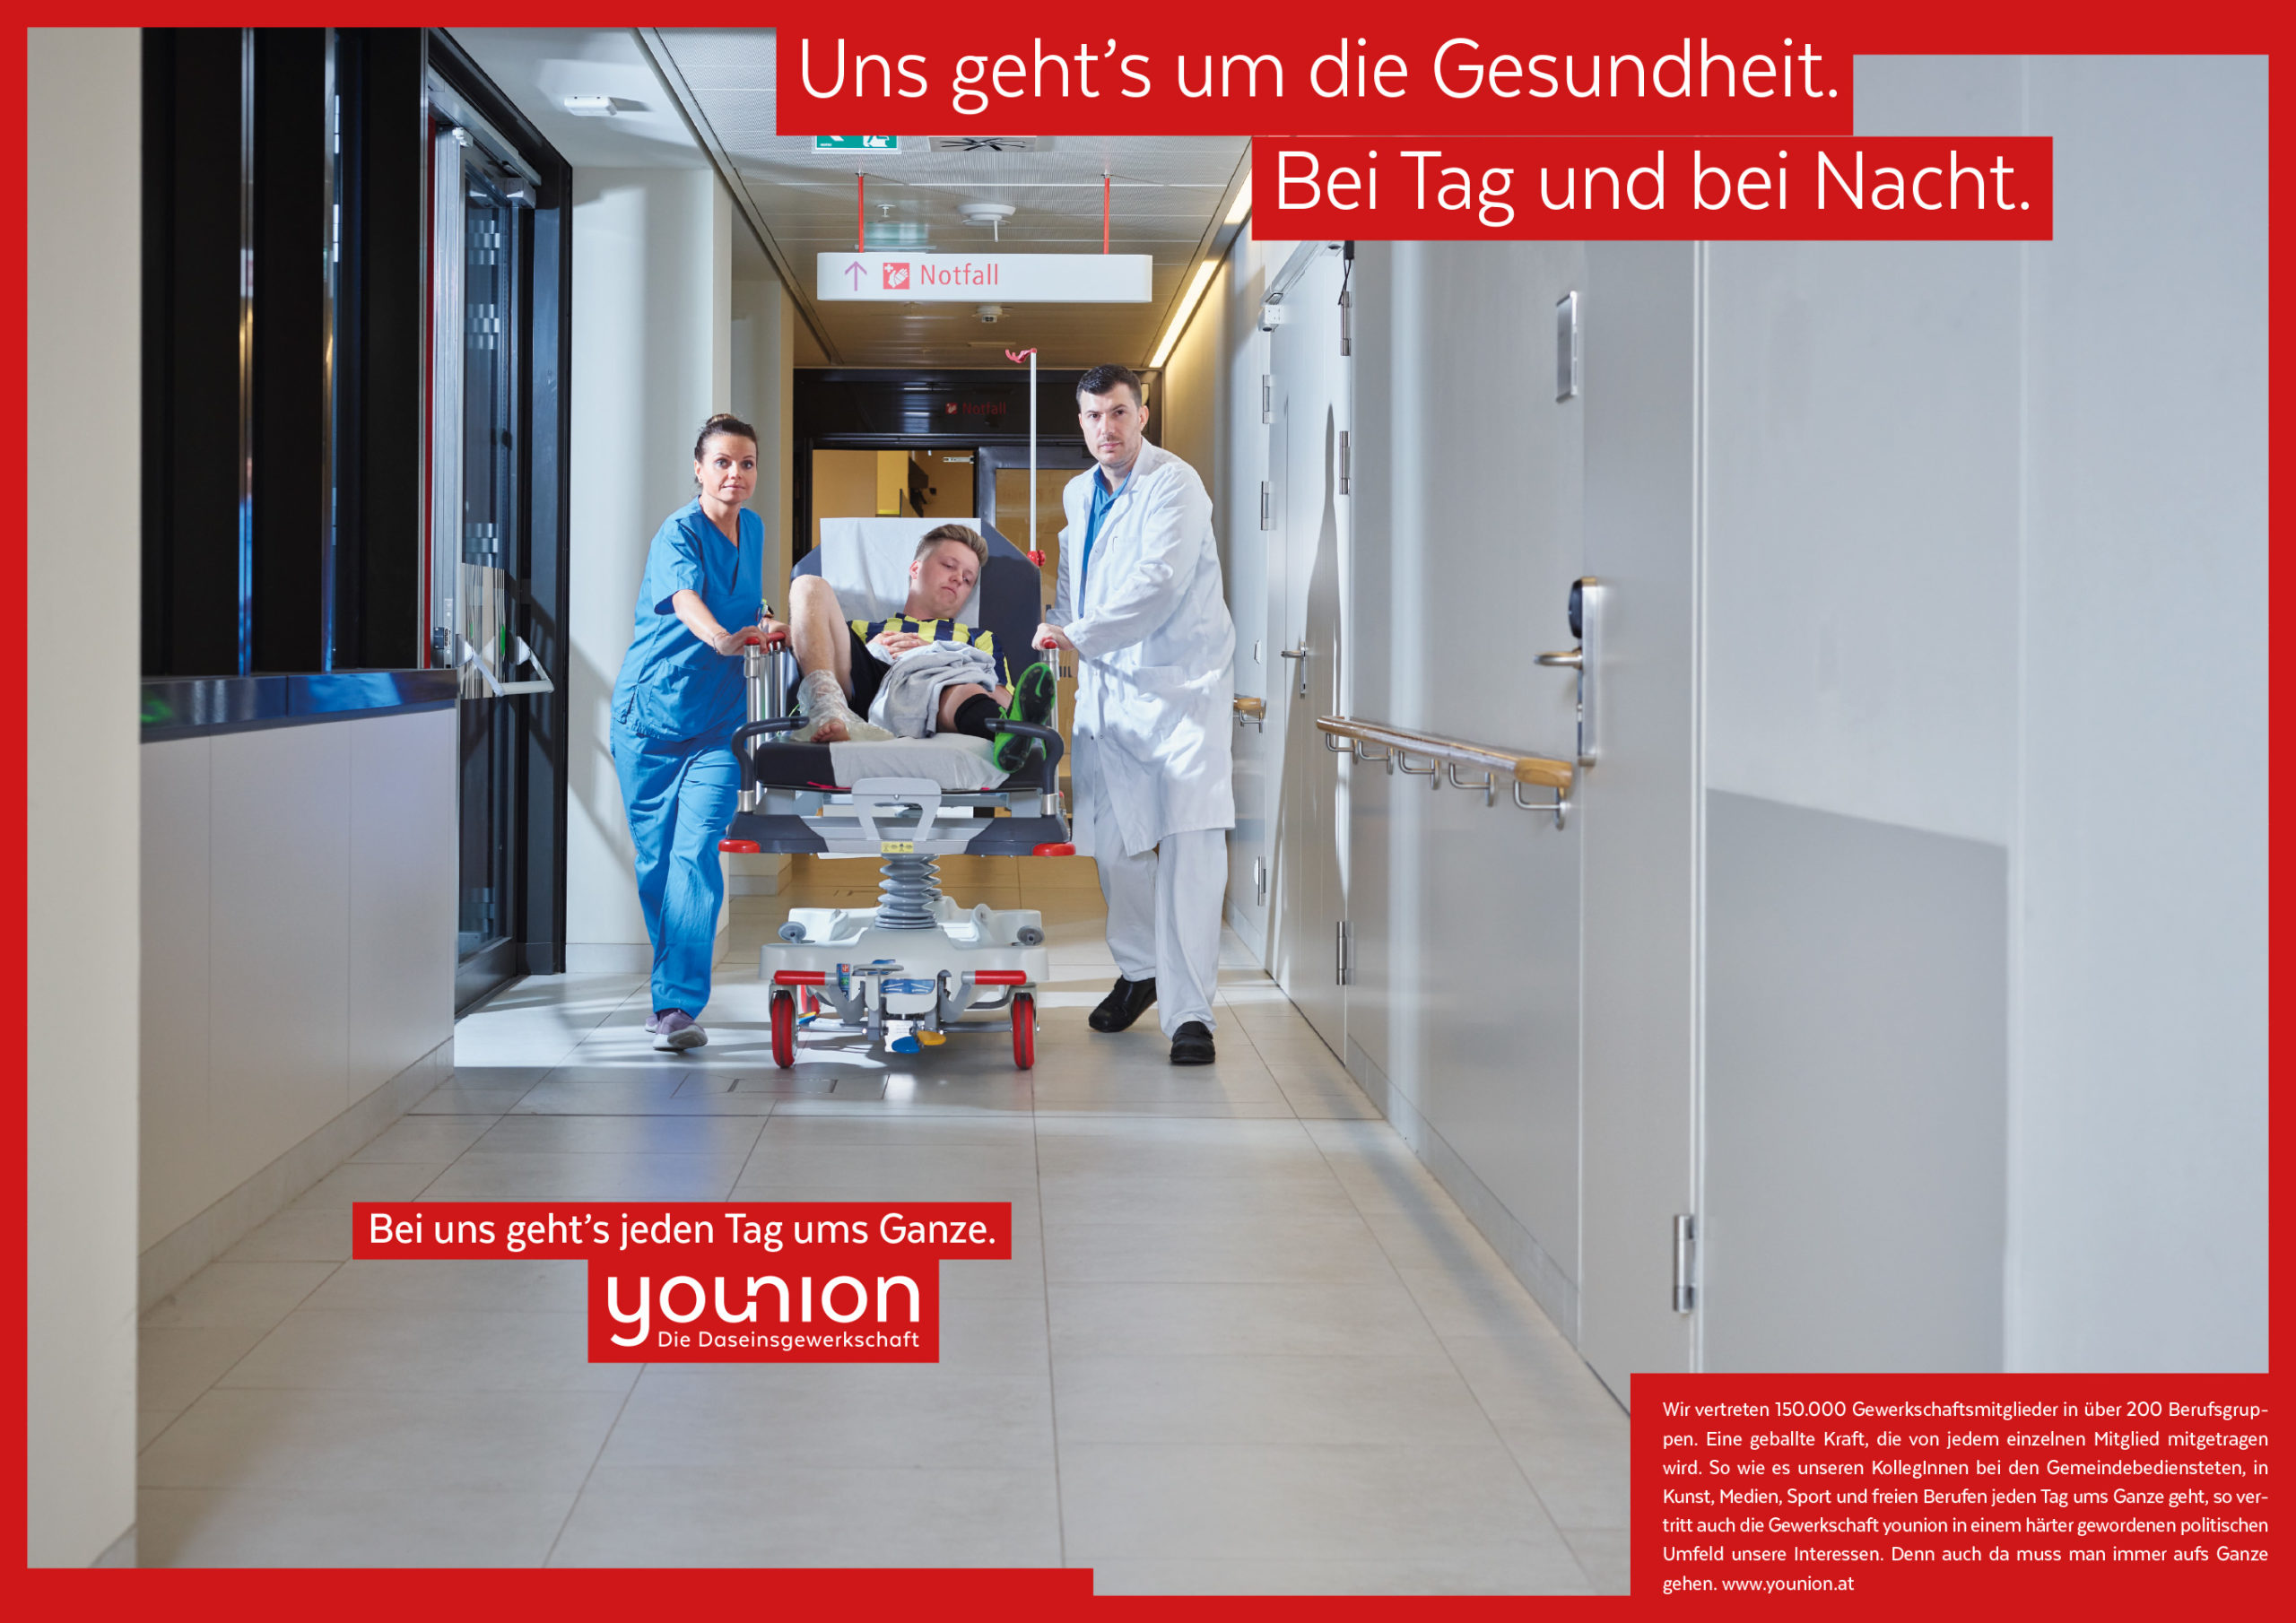 Younion-Kampagne-Sujet-5-scaled.jpg